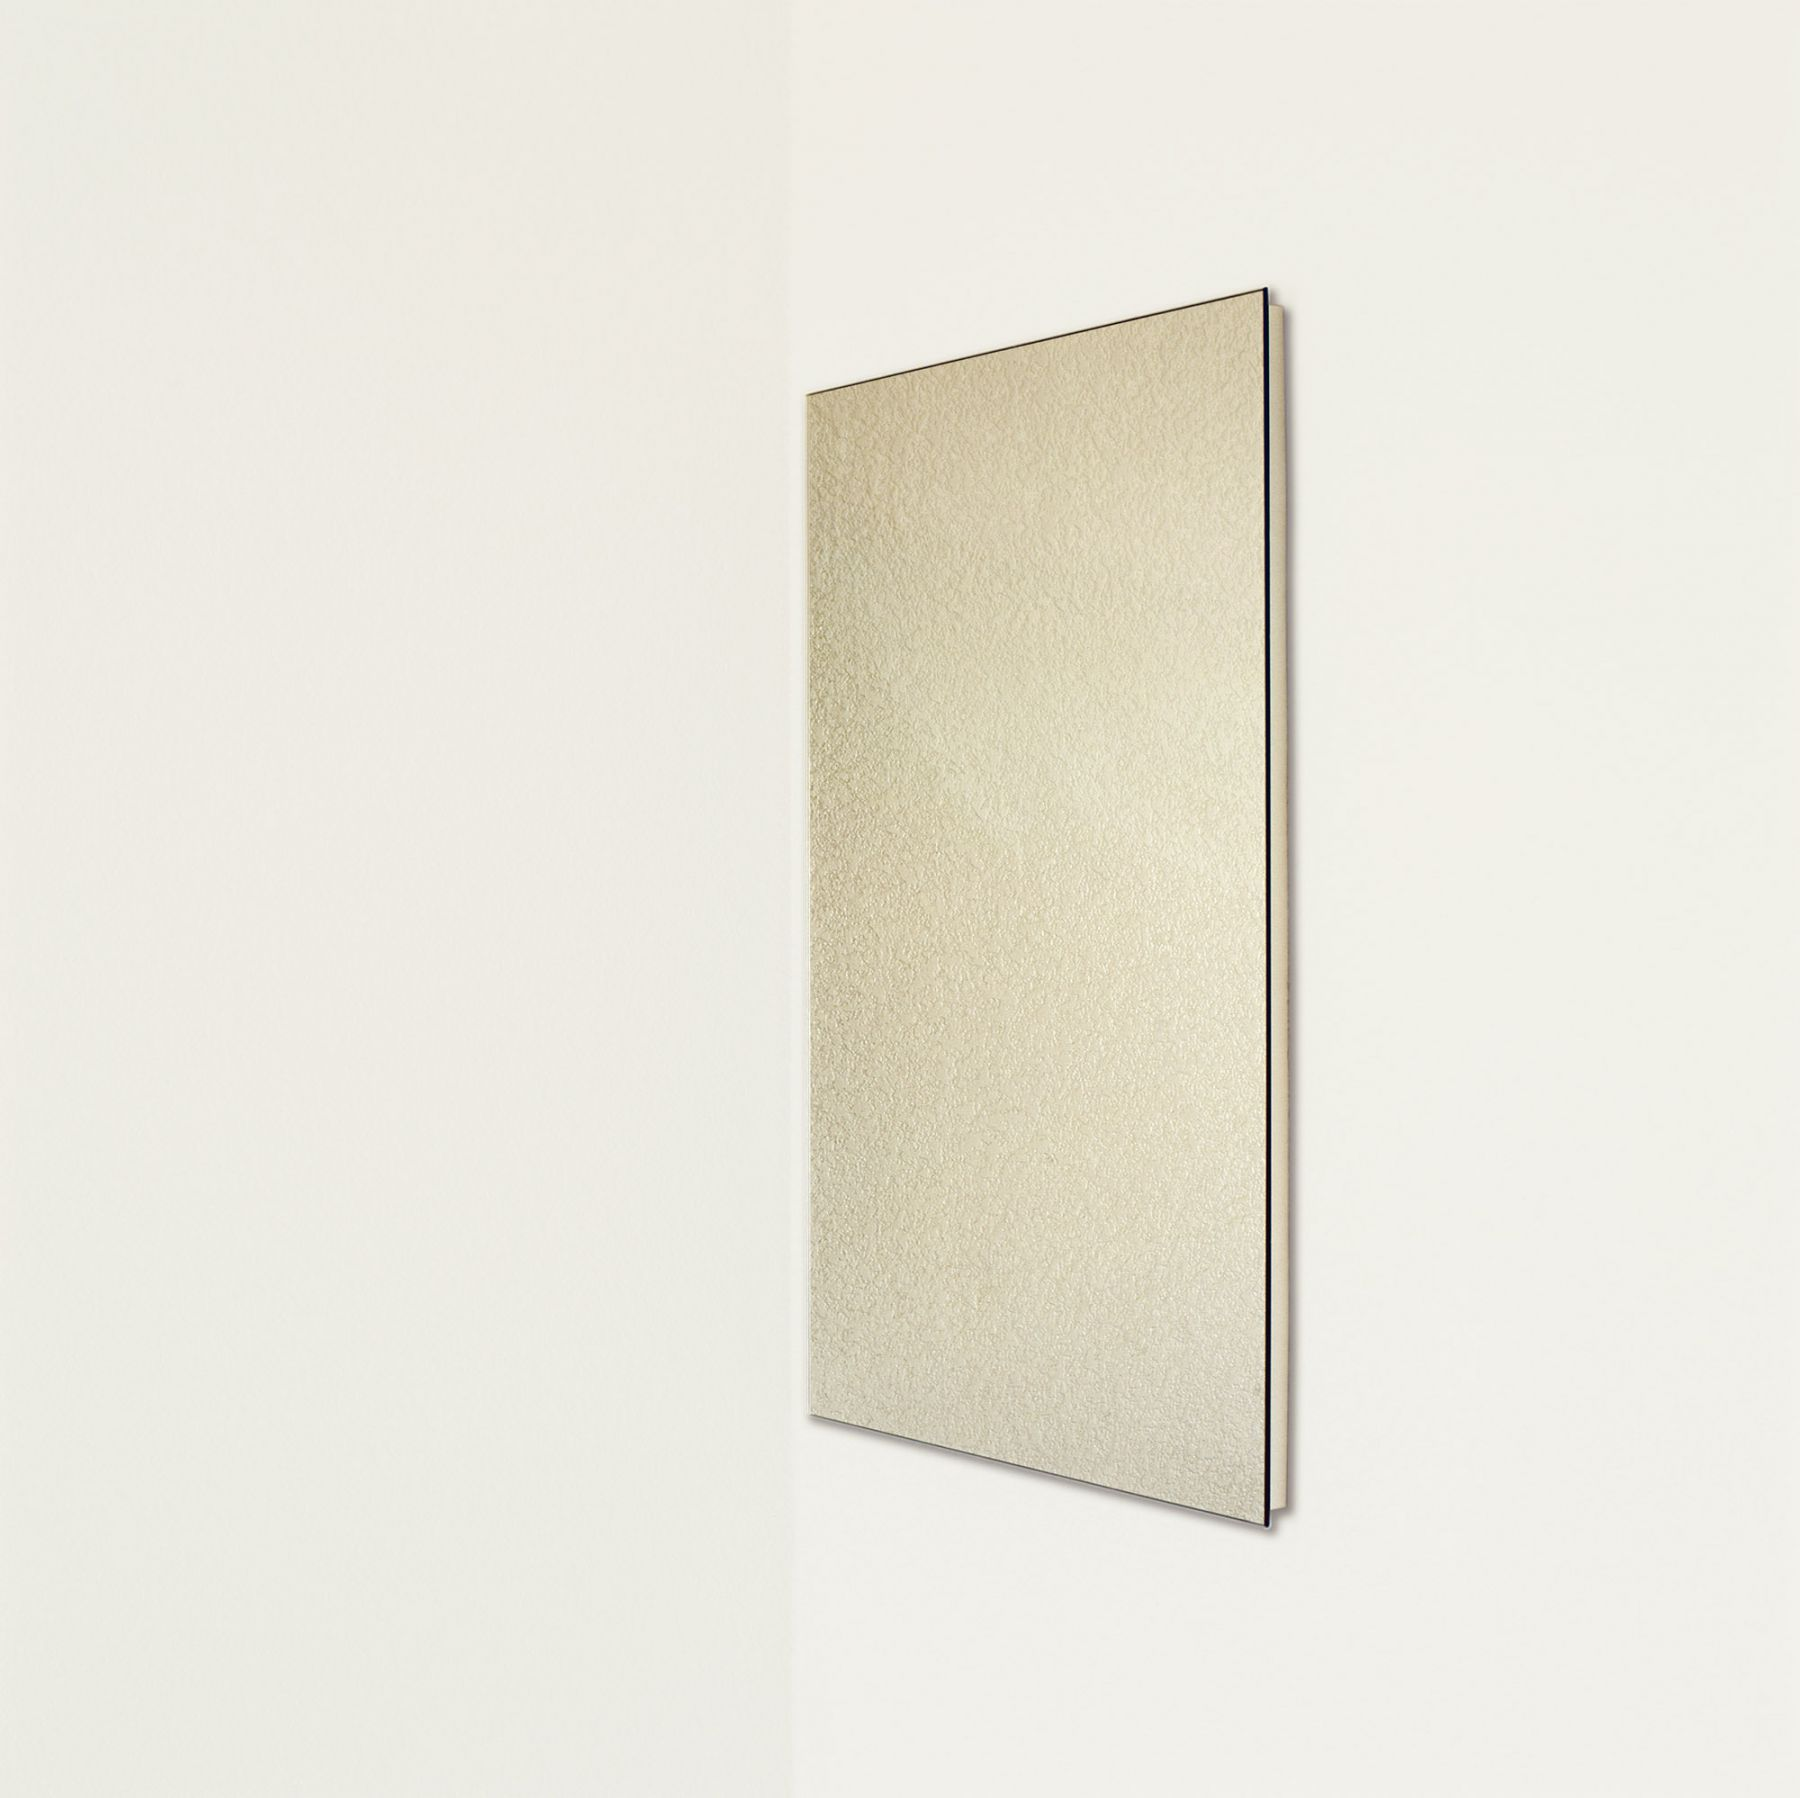 Discarded #7, 2012. Archival pigment print.Image dimensions 40 x 40 inches, framedimensions 47 x 47 inches.